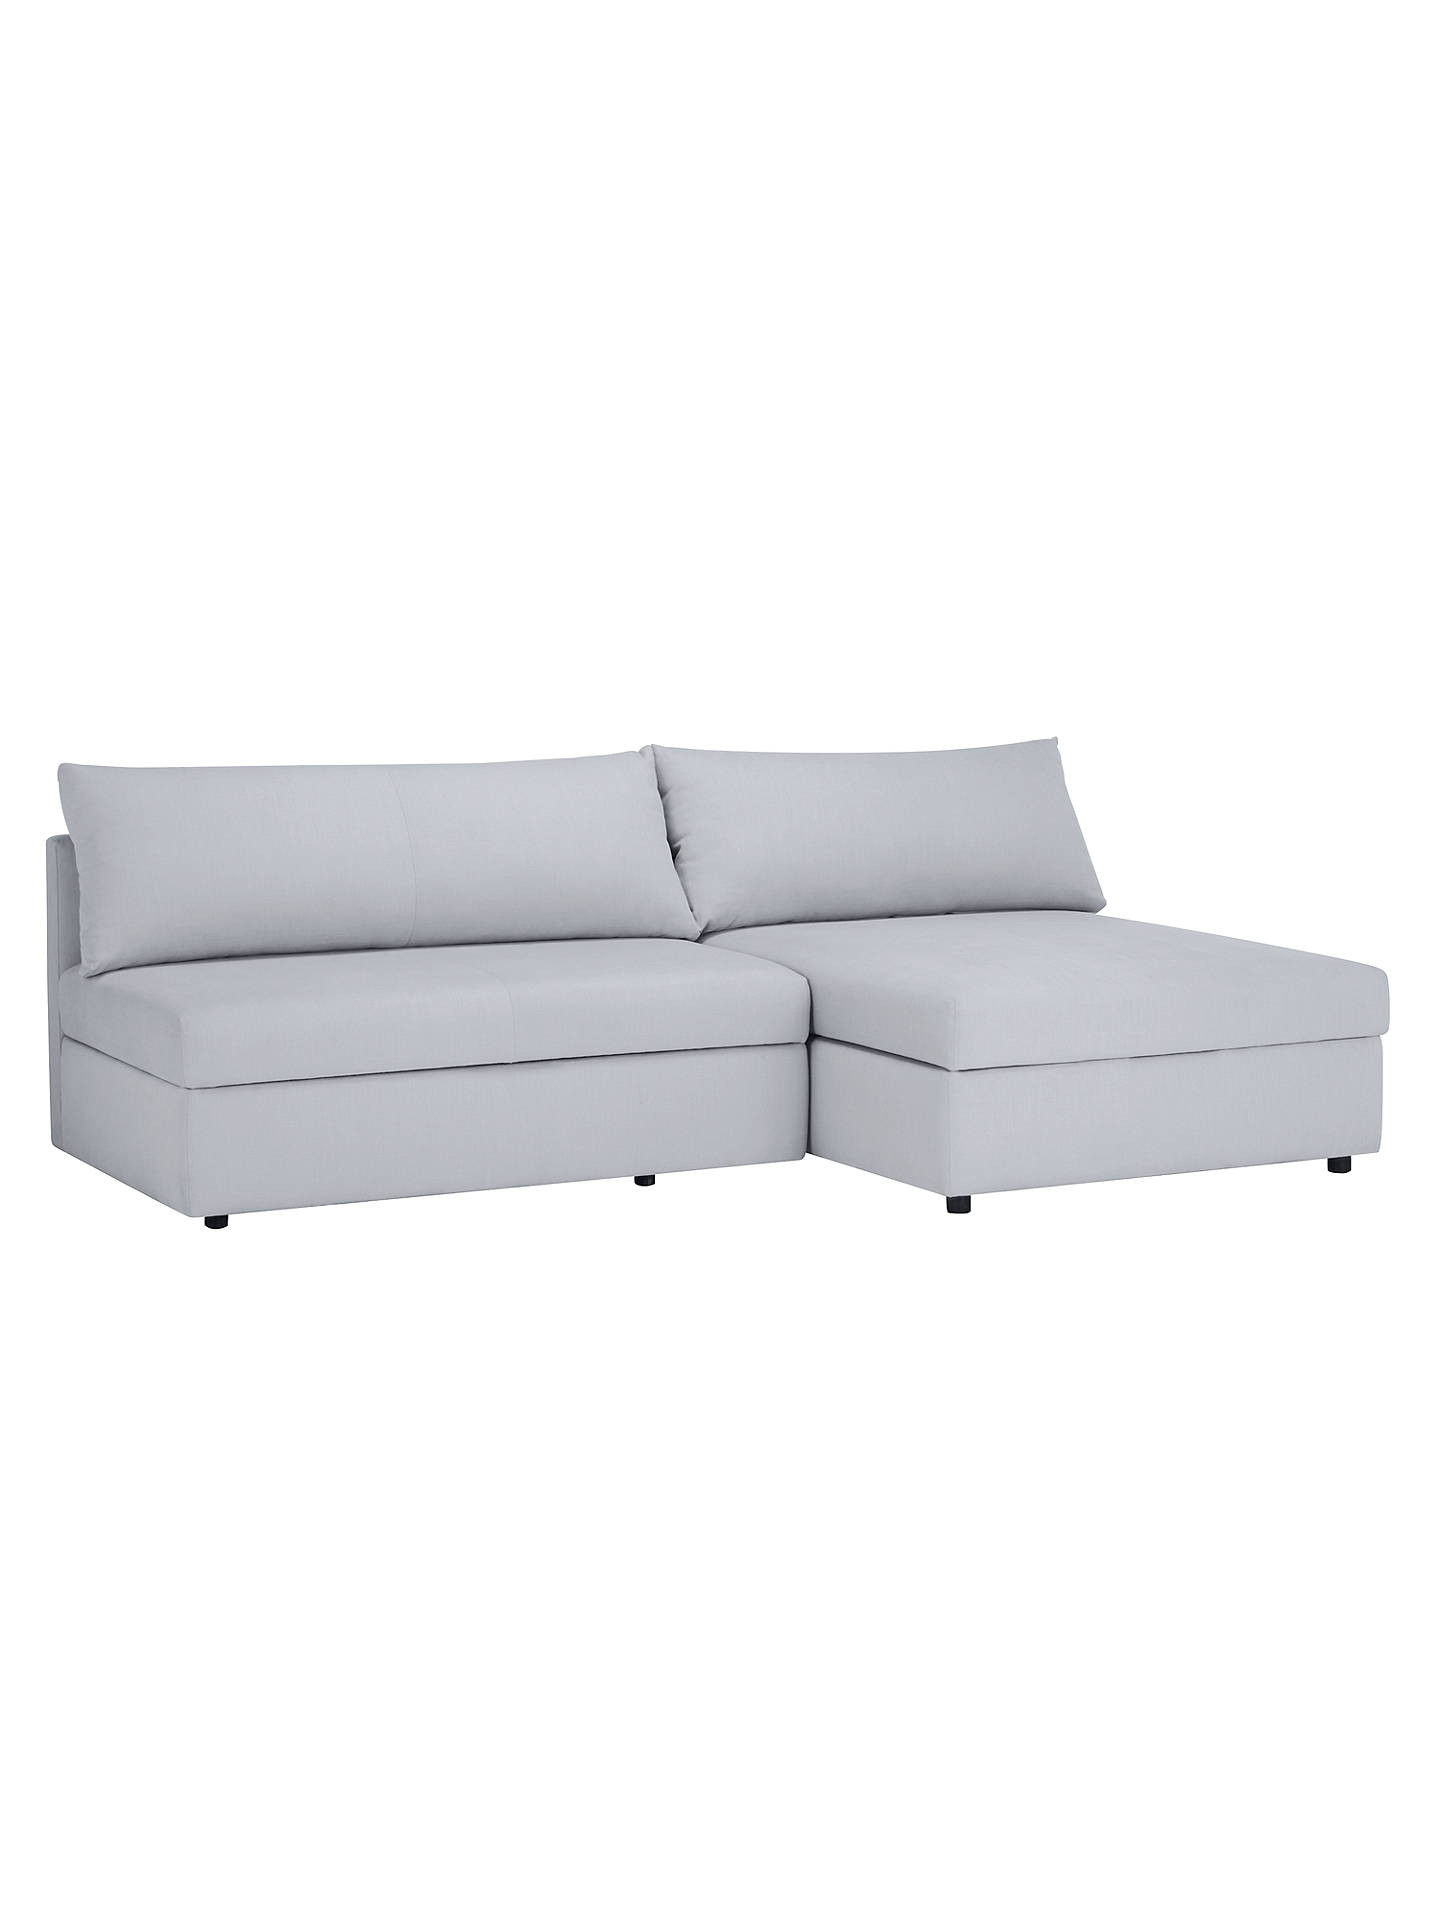 Wundervoll Switch Sofa Dekoration Von E By John Lewis Bed, Arden Blue